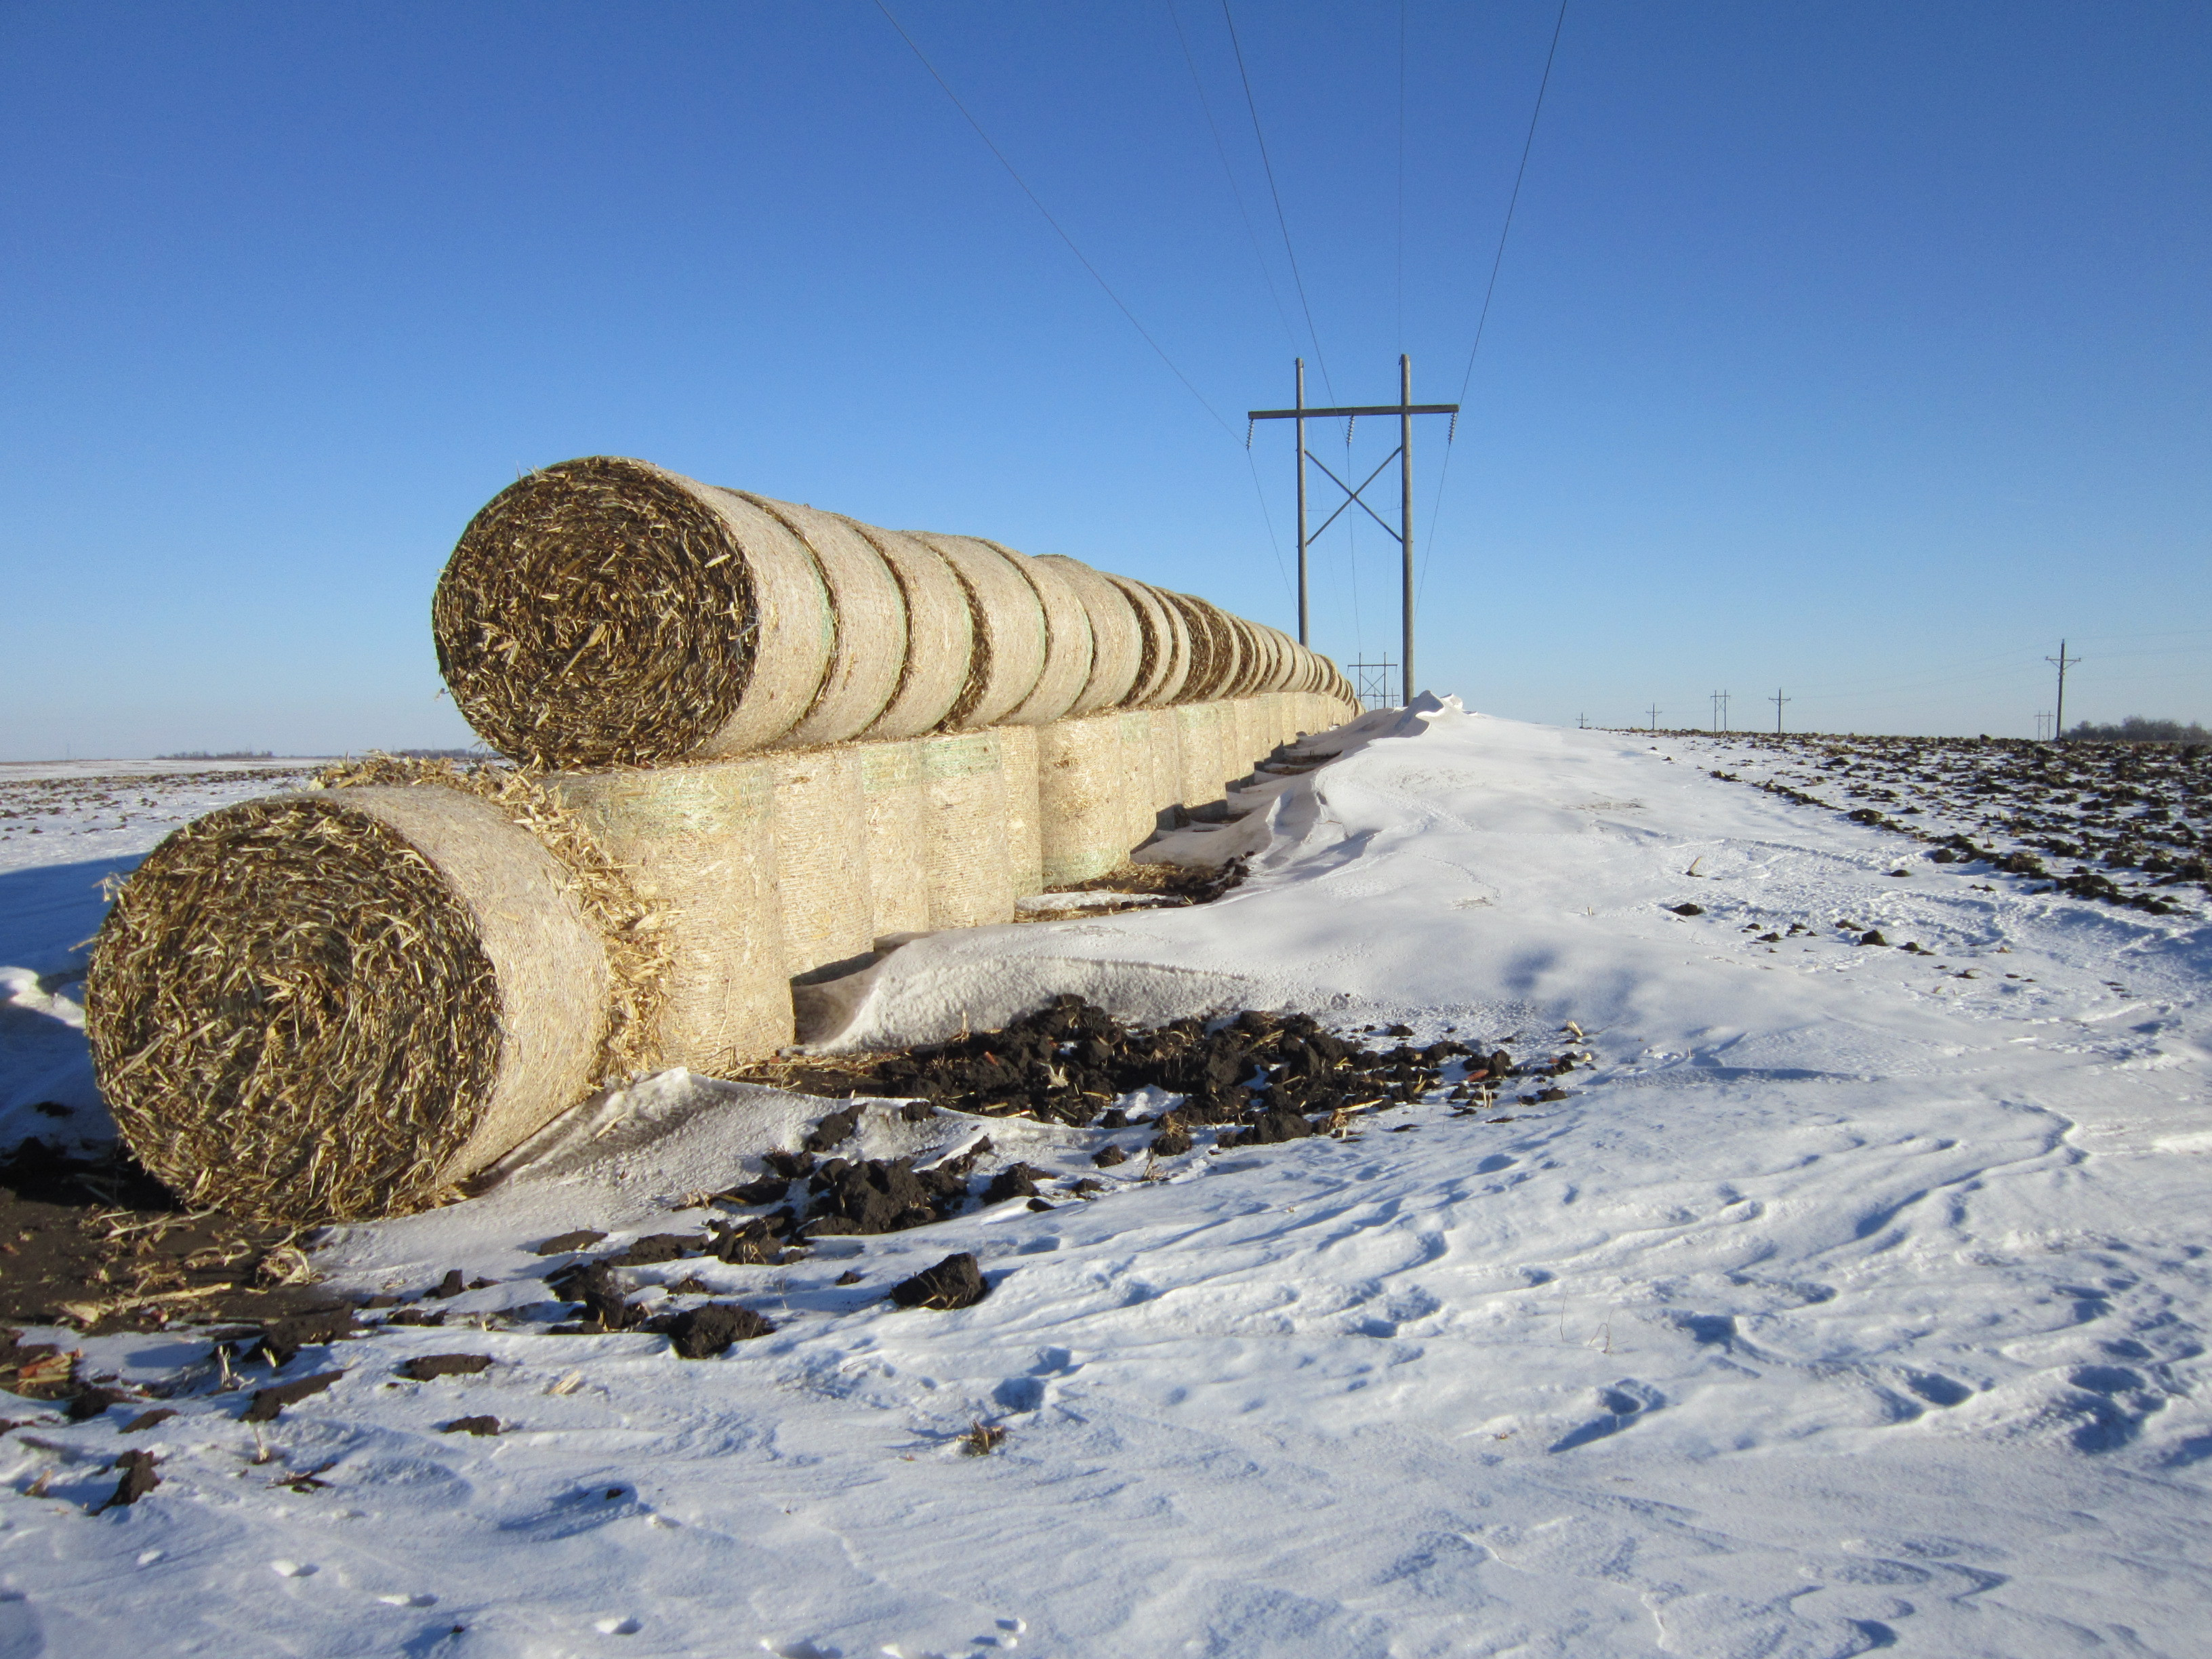 Stacked hay bales make effective snow fences for trapping blowing and drifting snow before it reaches a roadway corridor. The bales can be used for agricultural purposes once winter has passed.